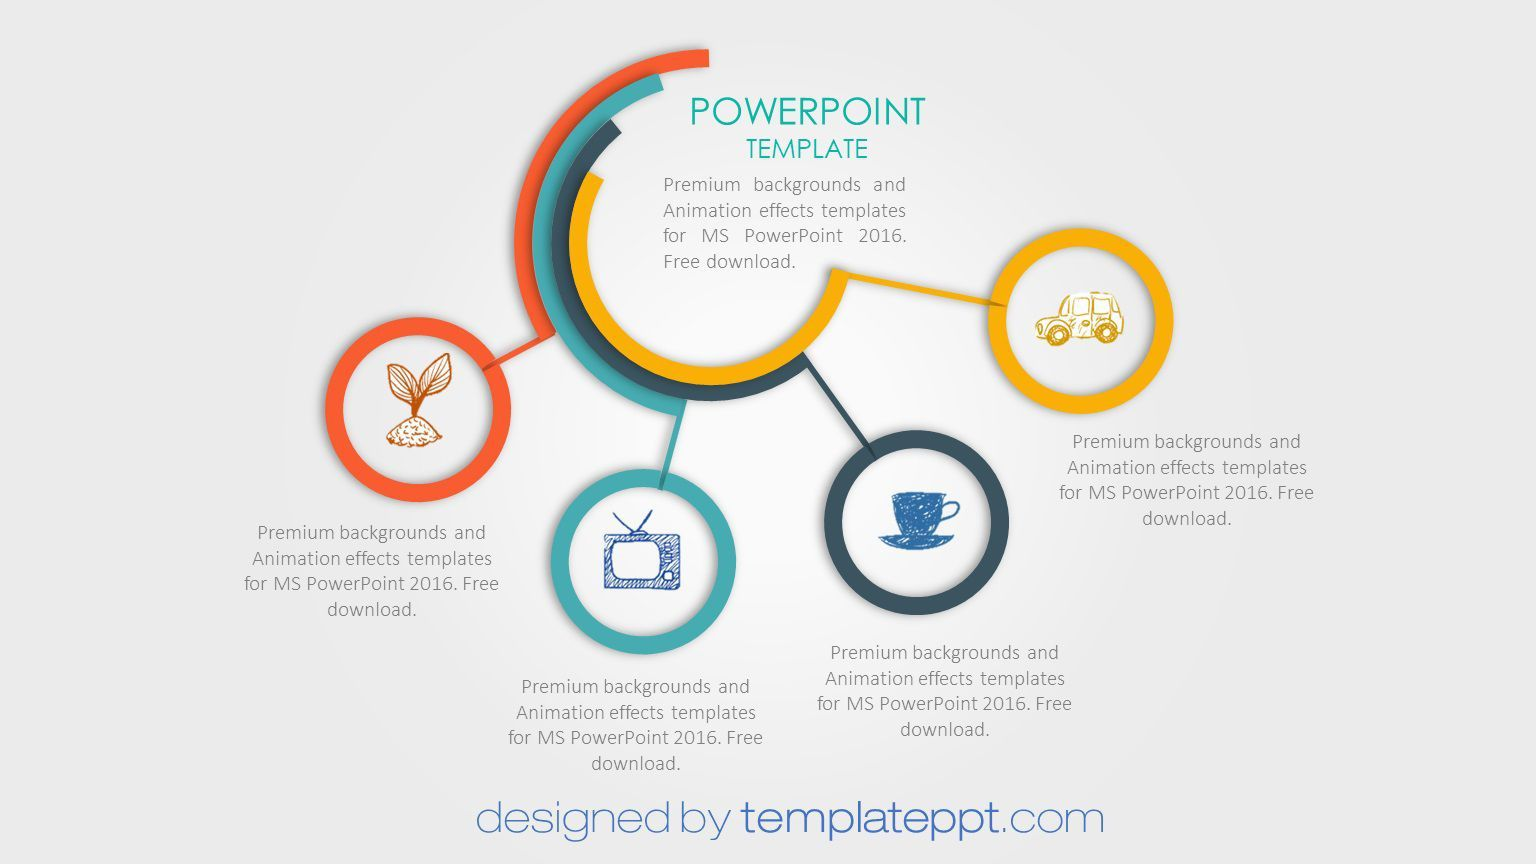 009 Marvelou 3d Animated Powerpoint Template Free Download 2016 Highest Quality Full